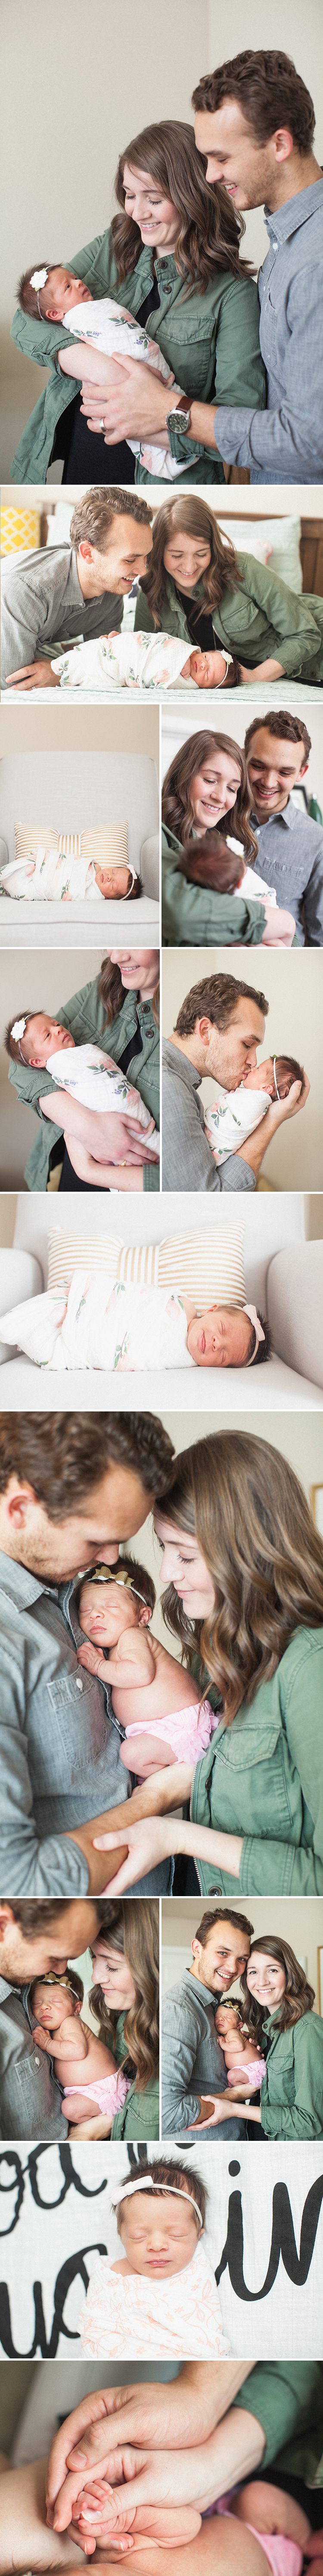 Tags brooke ogilvie photography lifestyle newborn baby girl dallas photographer